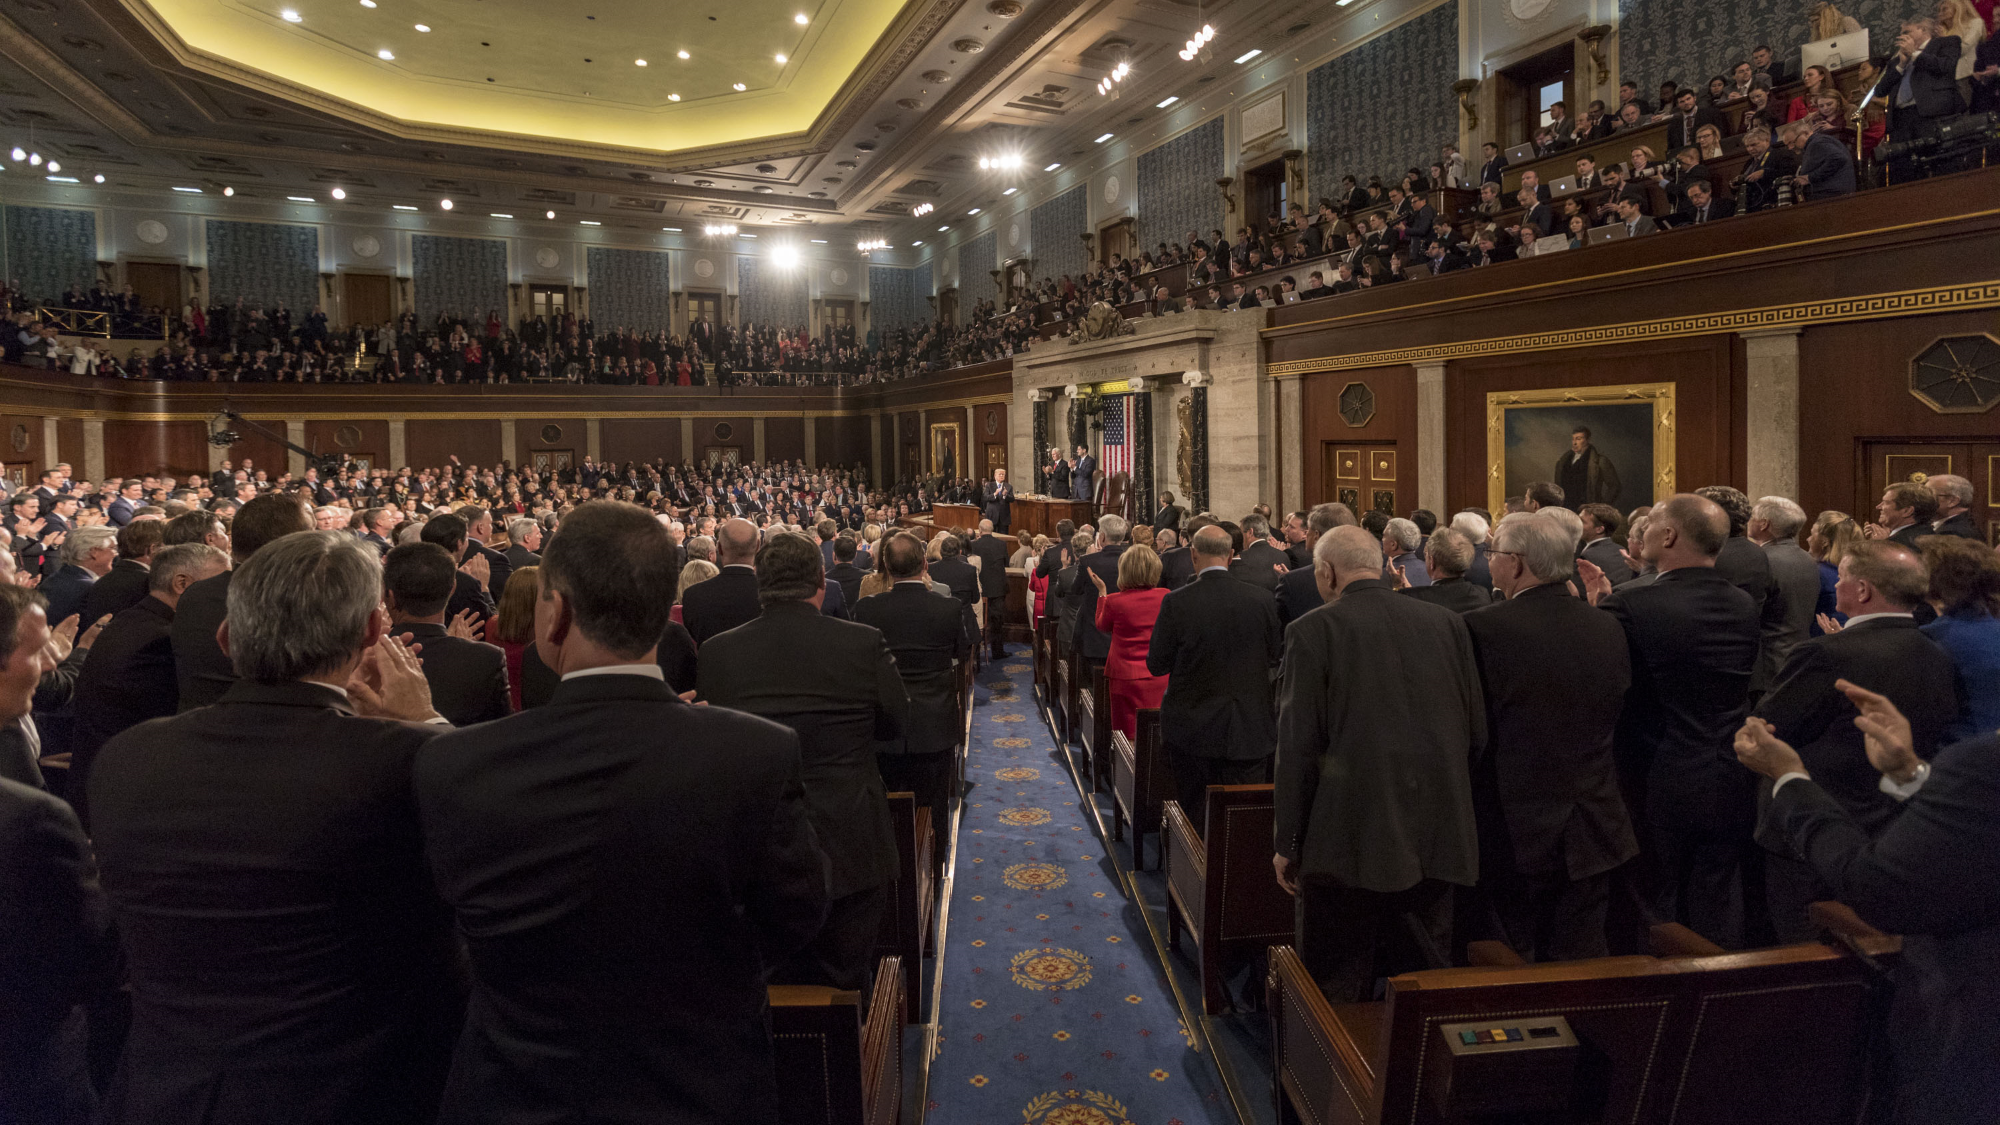 The 2018 State of the Union Address. Official White House photo by D. Myles Cullen/Wikimedia Commons.